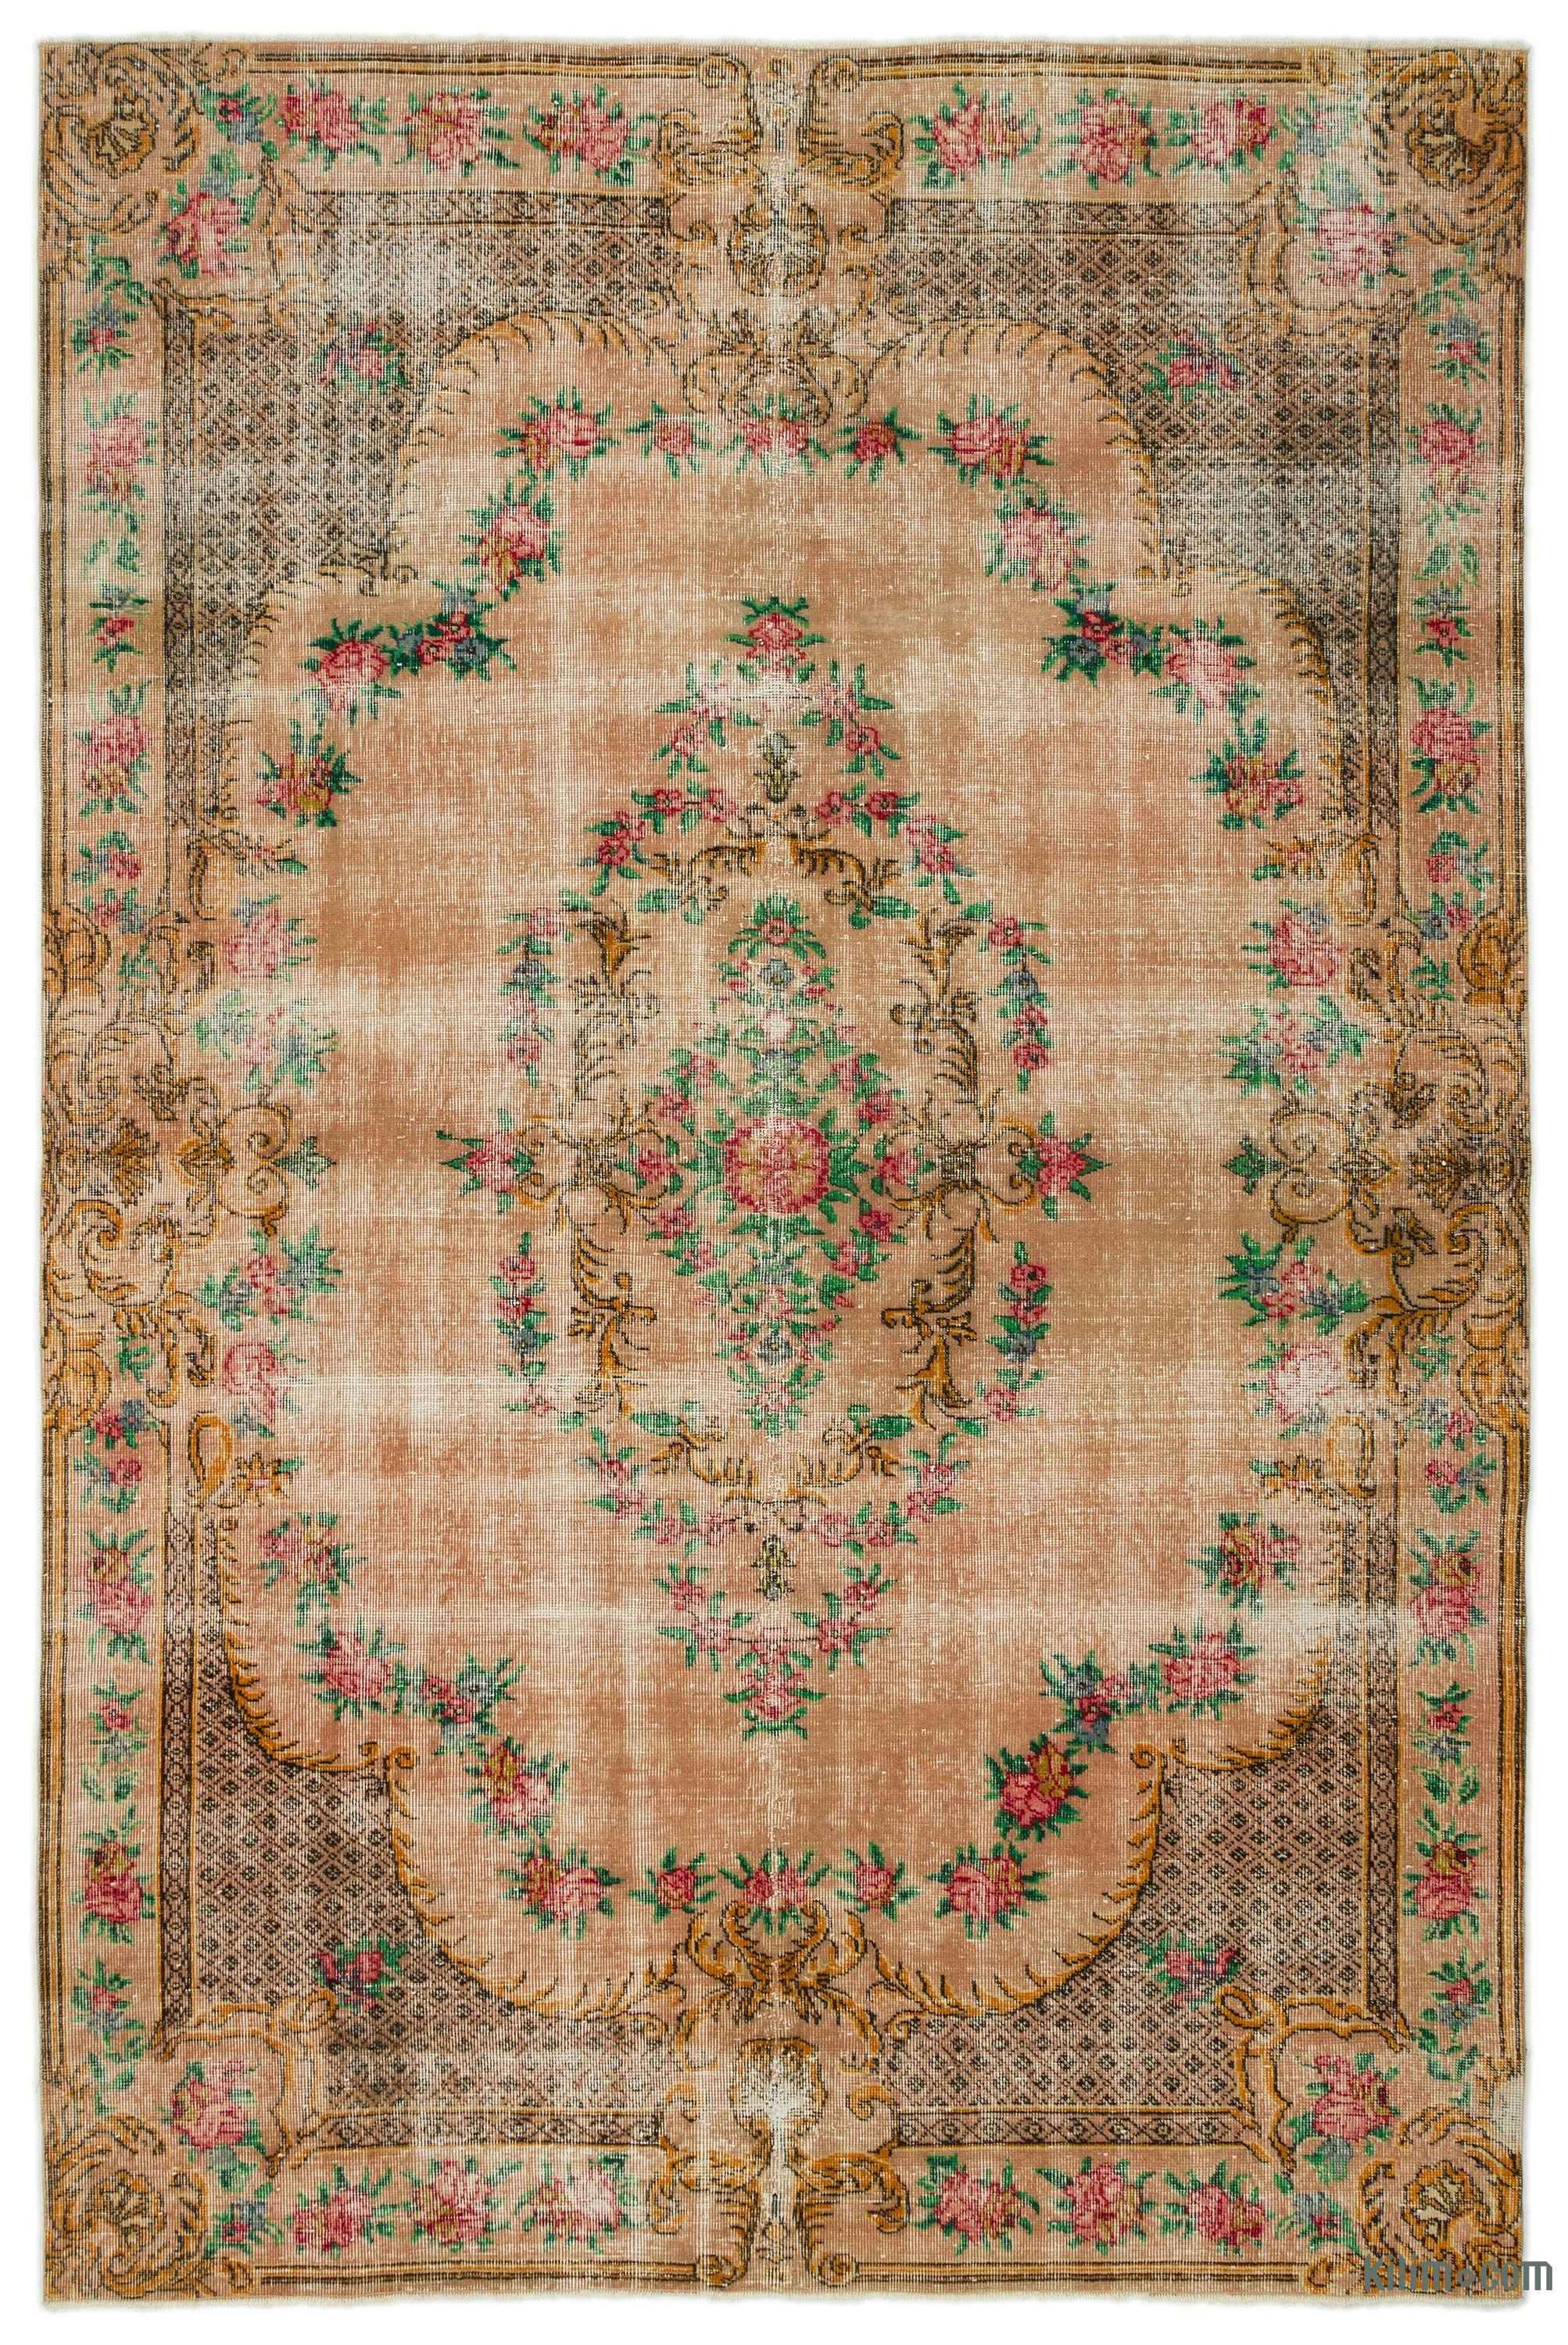 Turkish Vintage Area Rug 6 9 X 10 1 81 In X 121 In In 2020